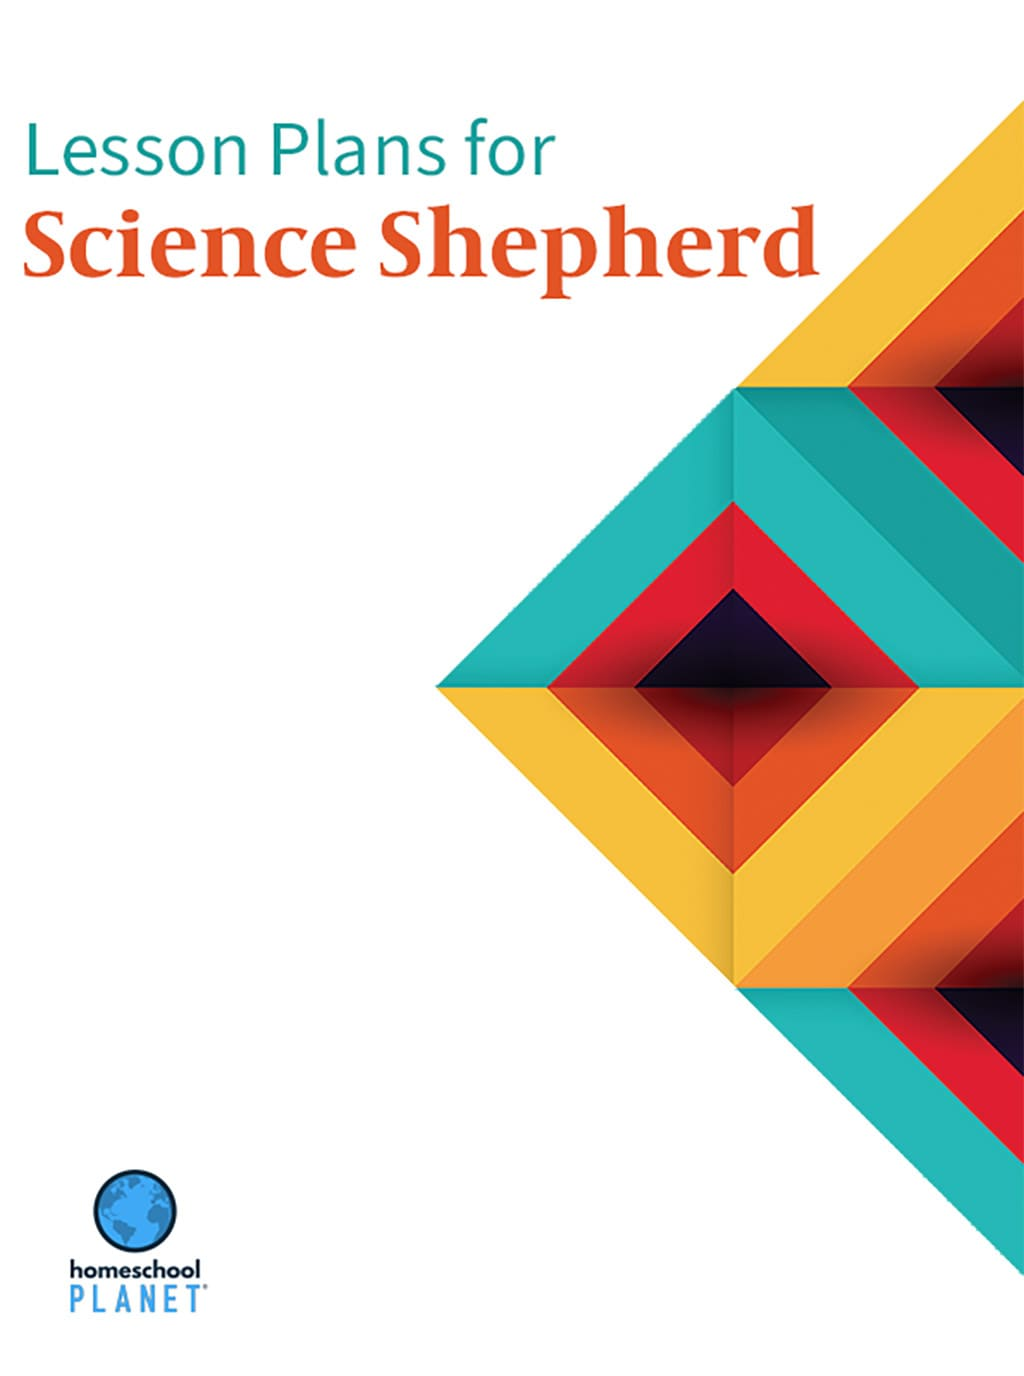 Science Shepherd Homeschool Planet middle school lesson plan cover